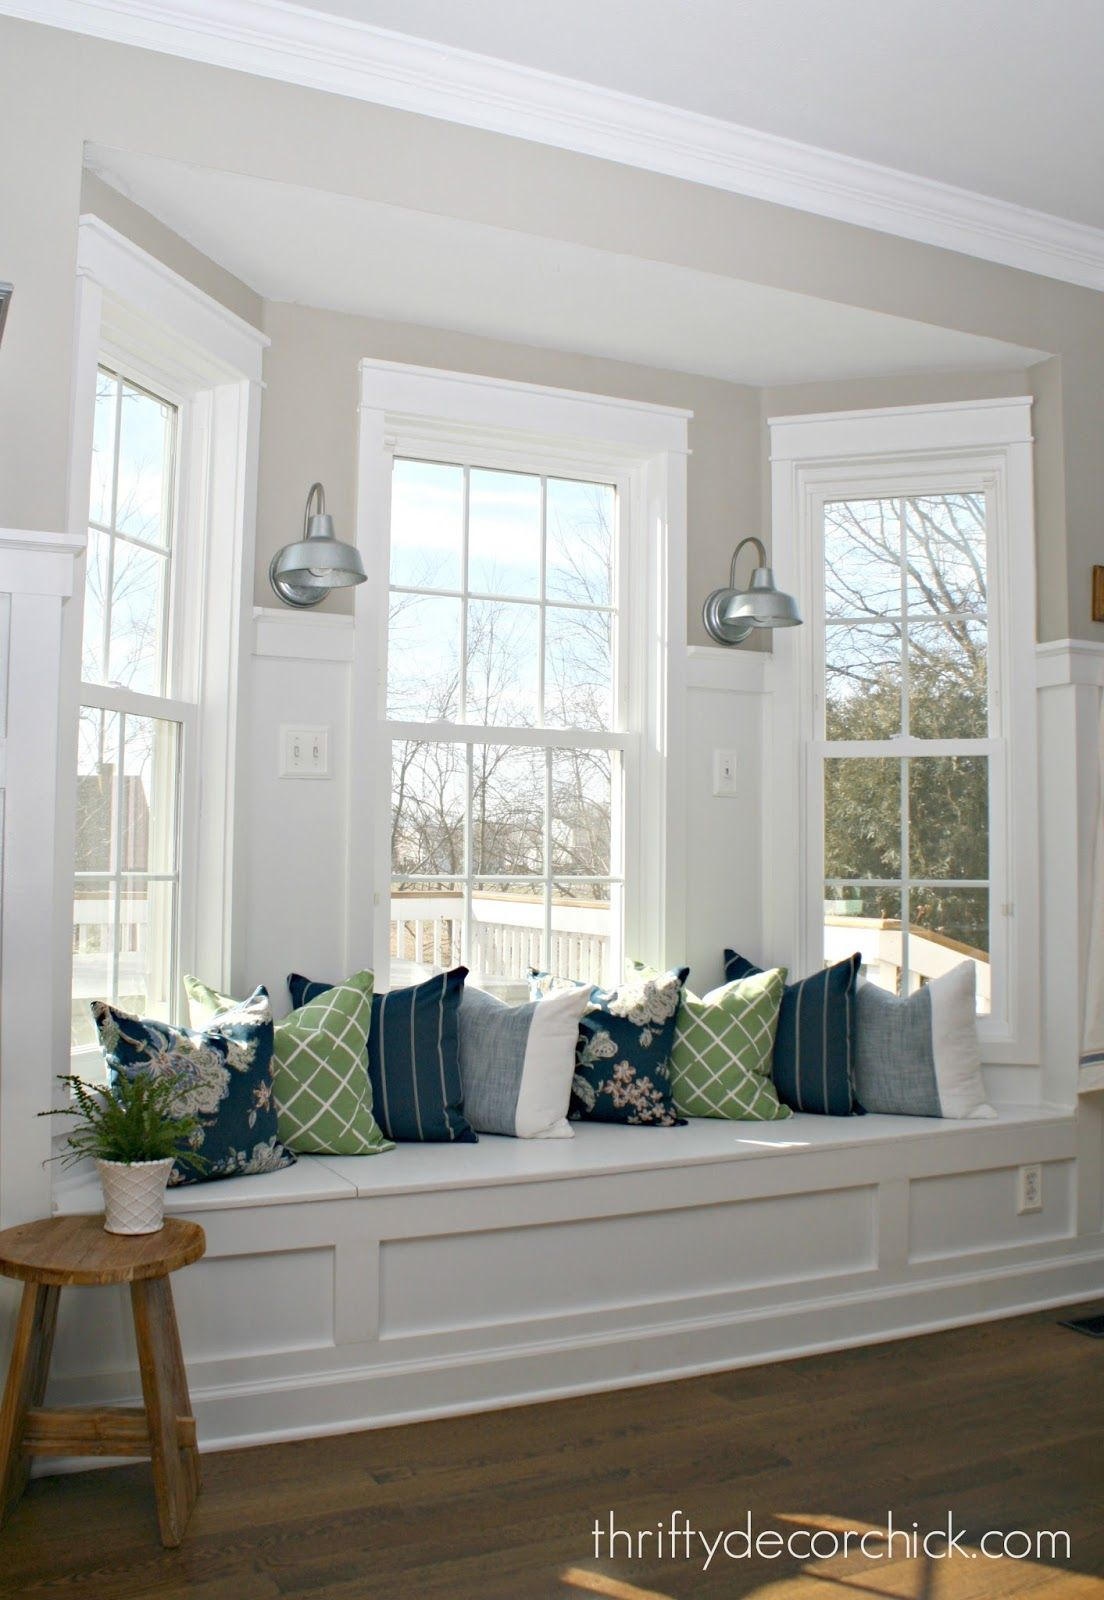 Our Home | Pinterest | Trim work, Household and Kitchen window seats